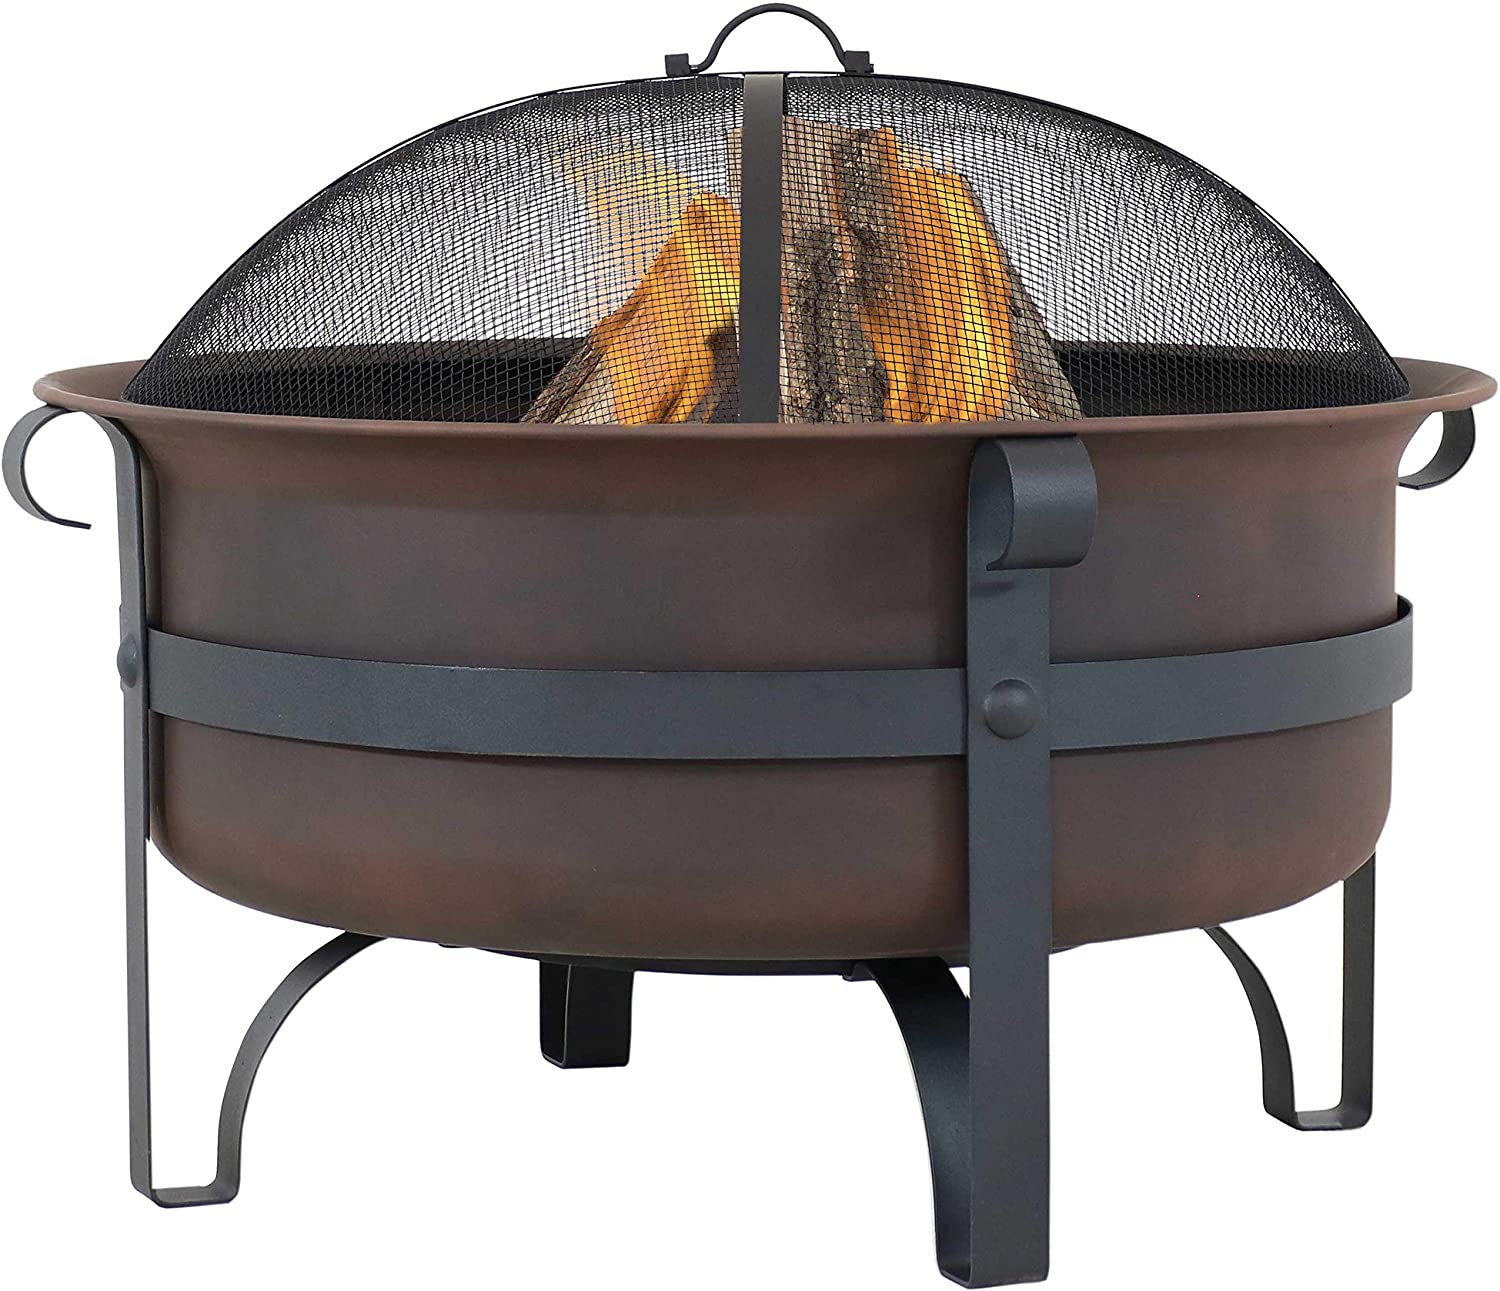 Sunnydaze Large Bronze Cauldron Outdoor Fire Pit Bowl   Round Wood Burning  Patio Firebowl with Portable Poker and Spark Screen   10 Inch